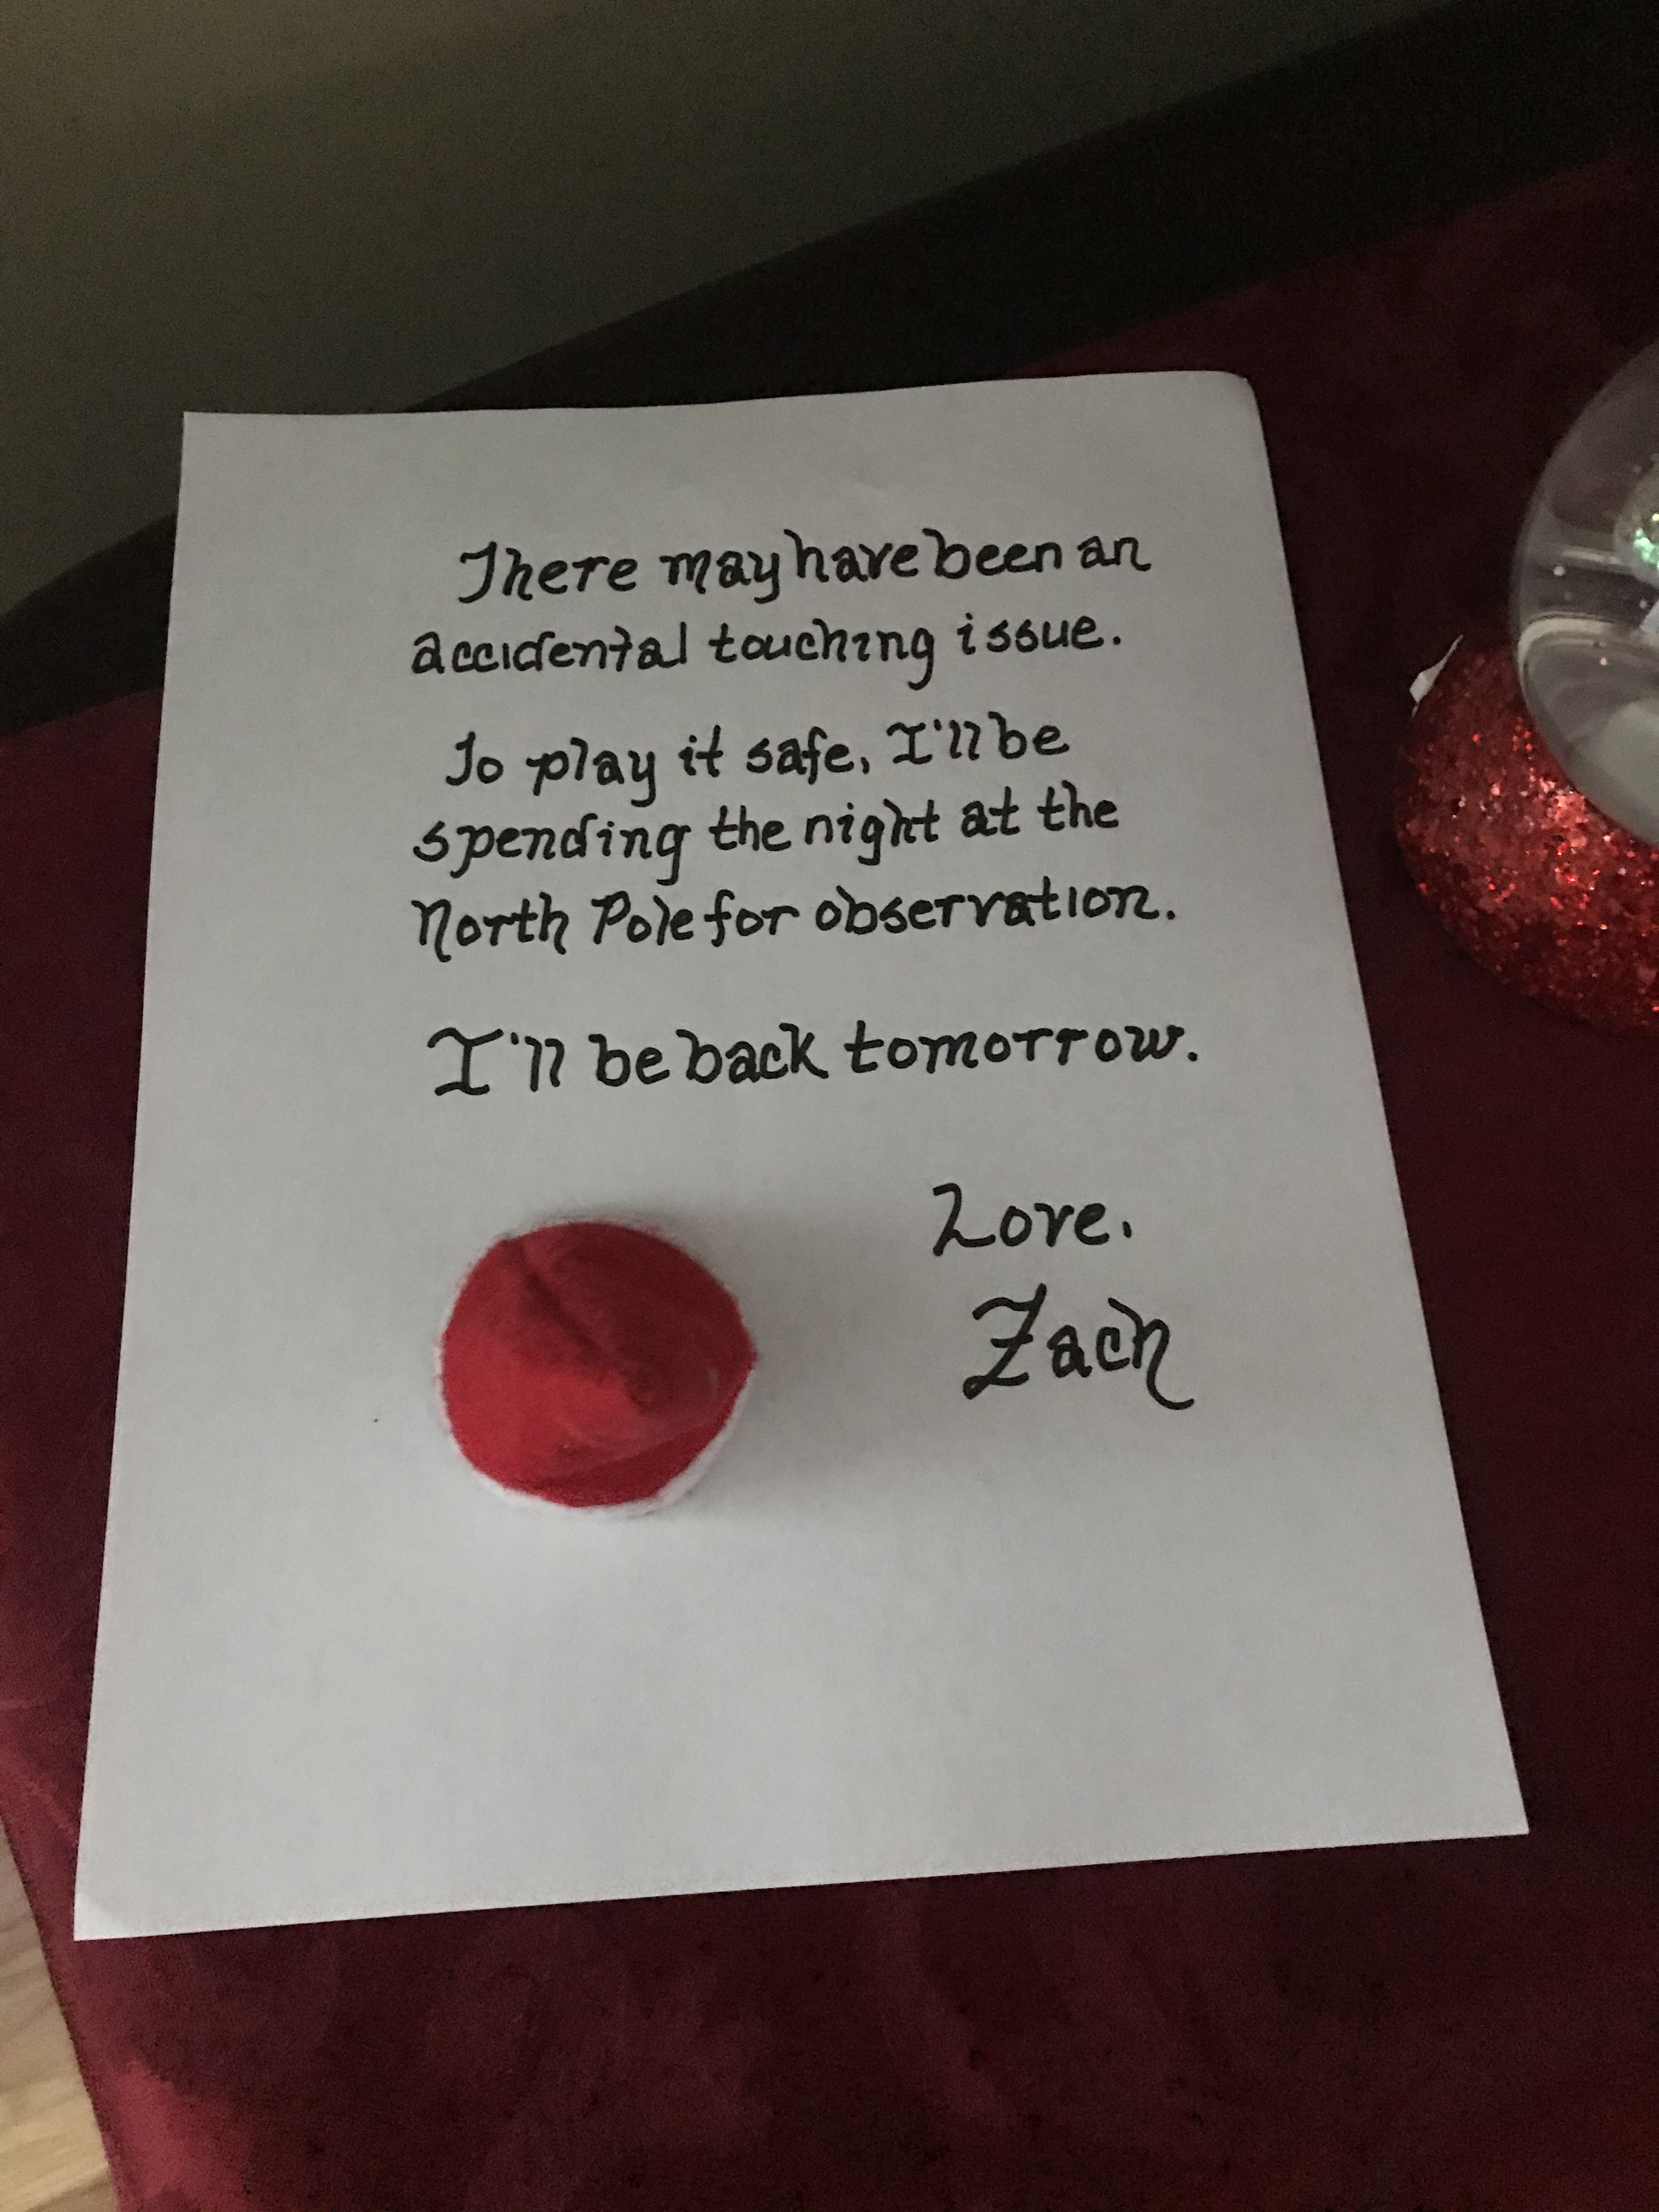 In 5 years, we have never had an incident, but apparently... there was one last night. Can't confirm with 100% certainty, but at least Zach is playing it safe!  #Zach2019 #RulesAreRules #NoTouching